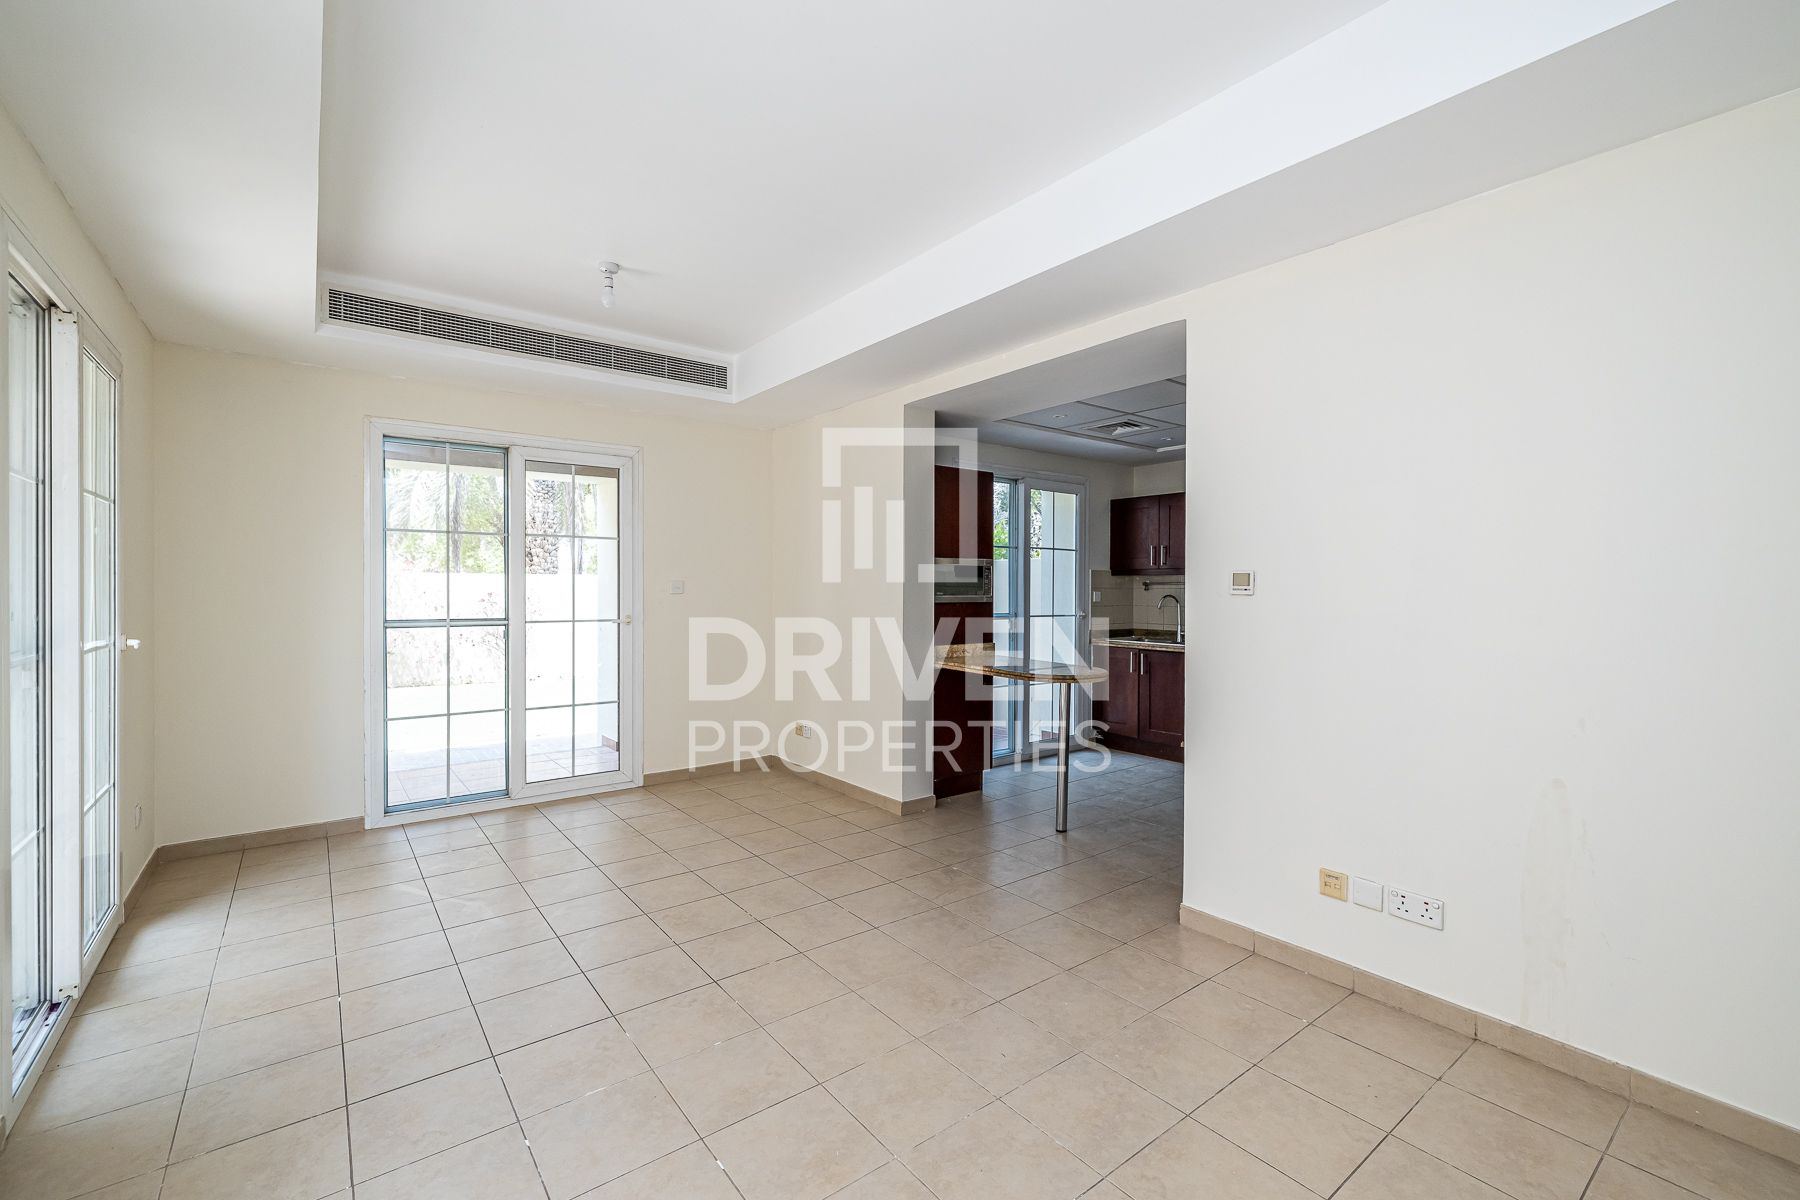 Villa w/ Study Room and Ready to move in